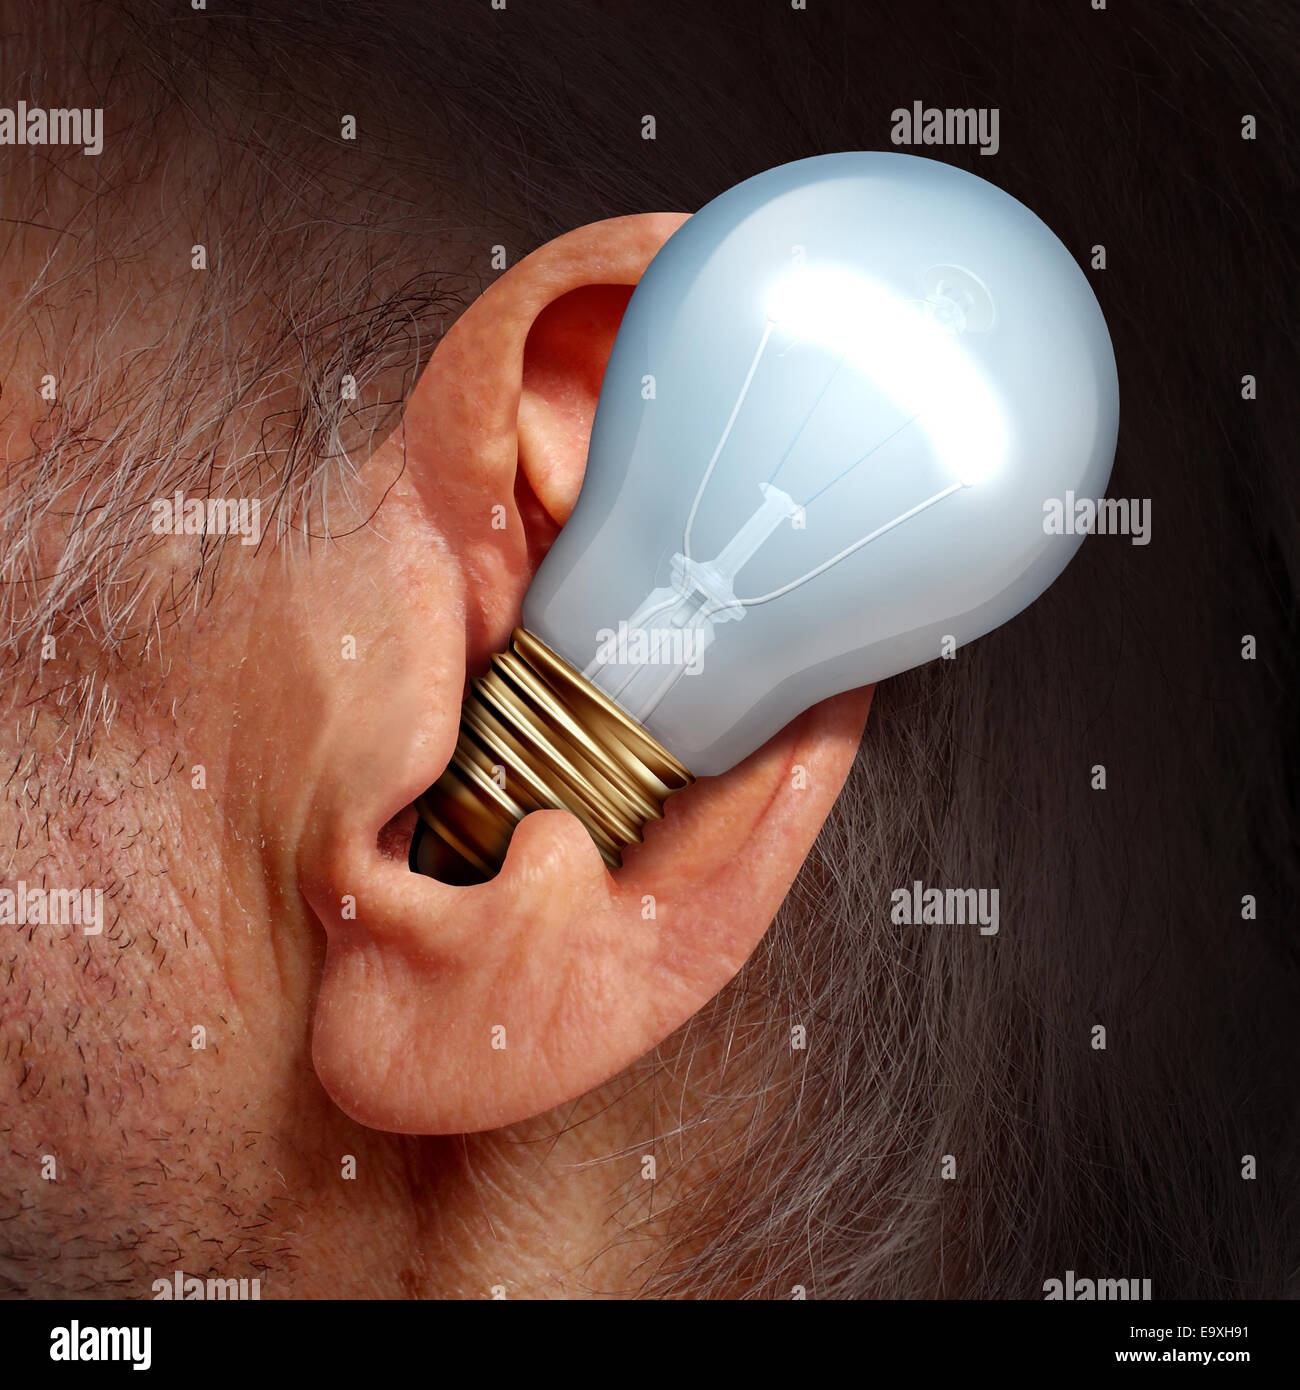 Listen to ideas concept as a lightbulb inside a human ear as a symbol of listening and tuning in to creative thoughts - Stock Image